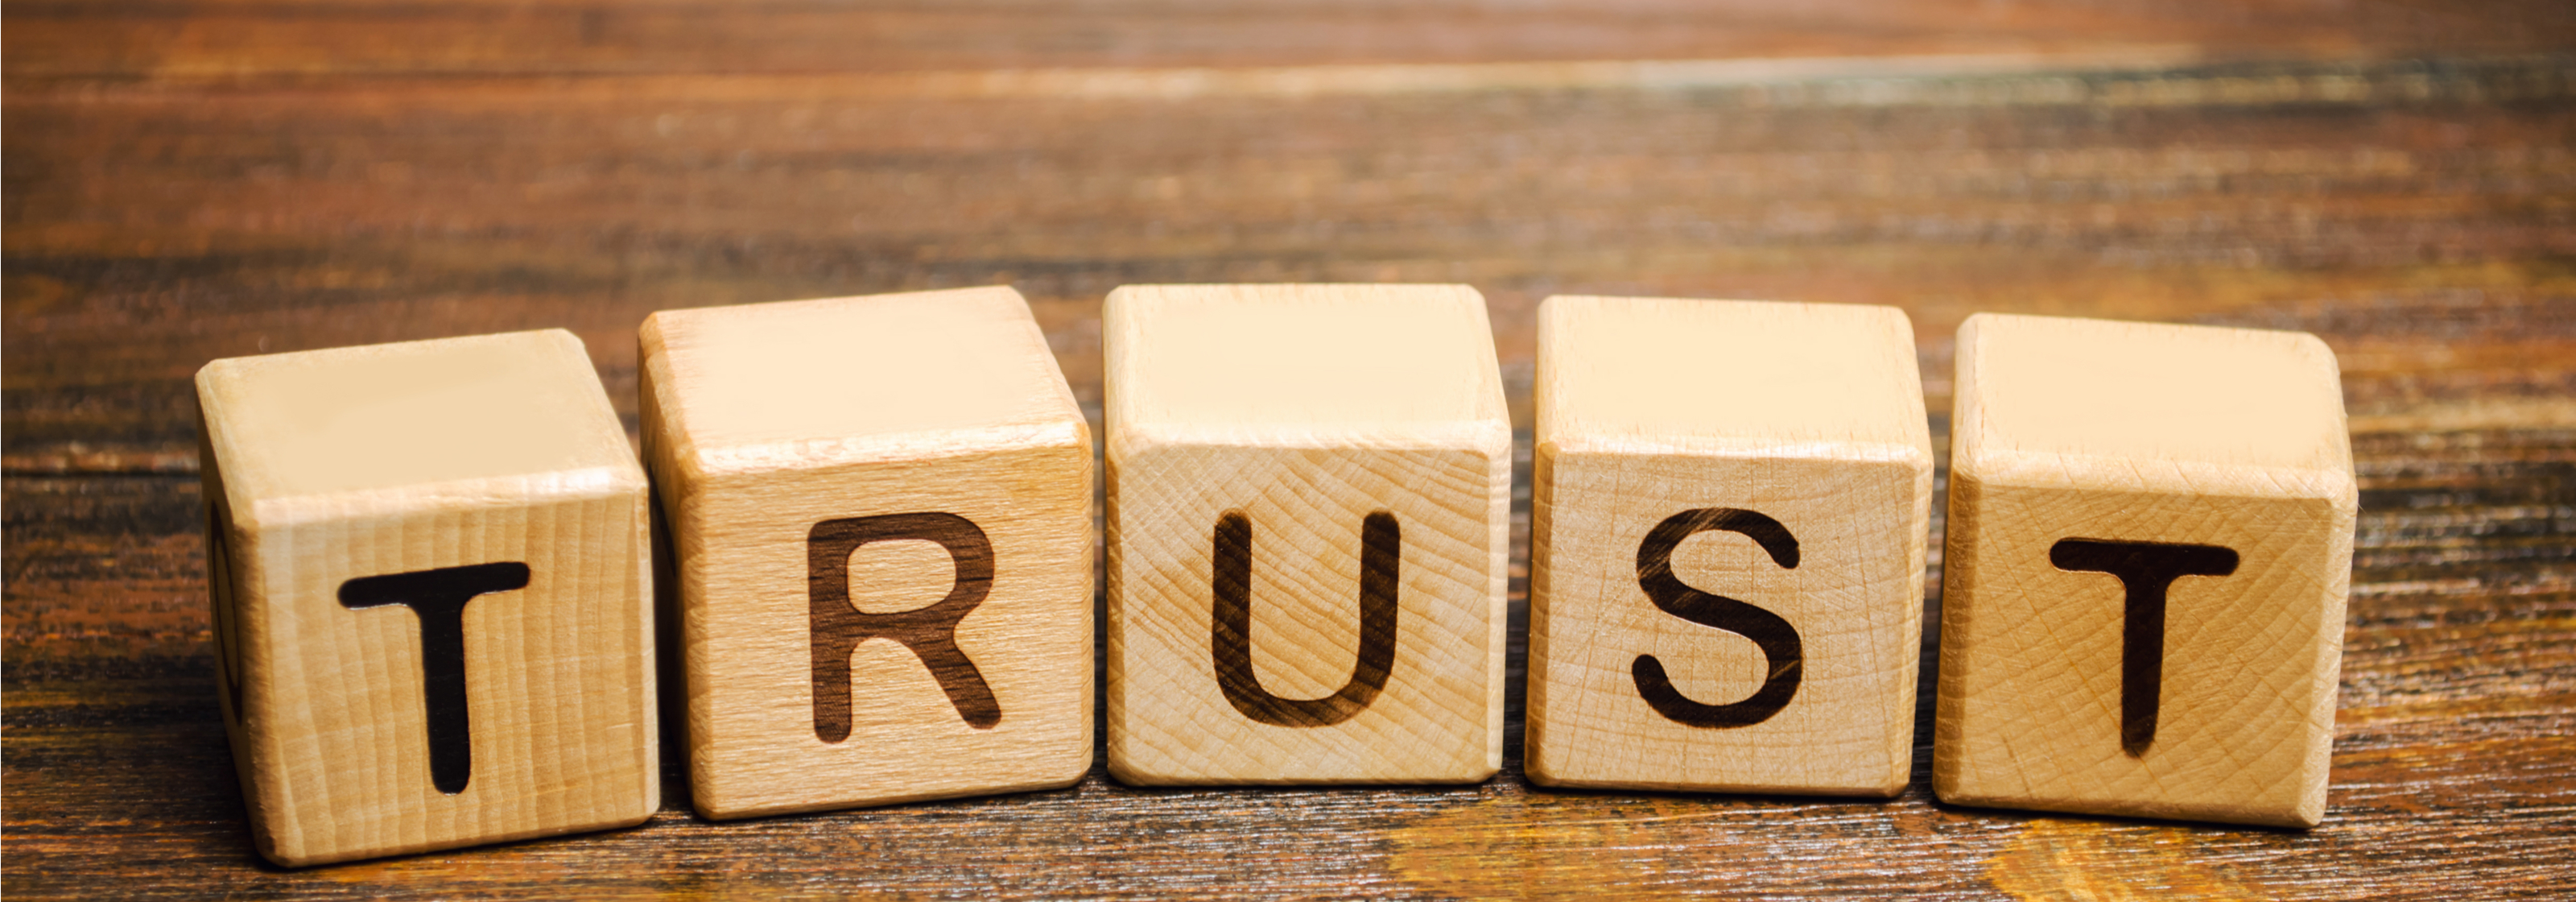 Building A Team Based on Trust